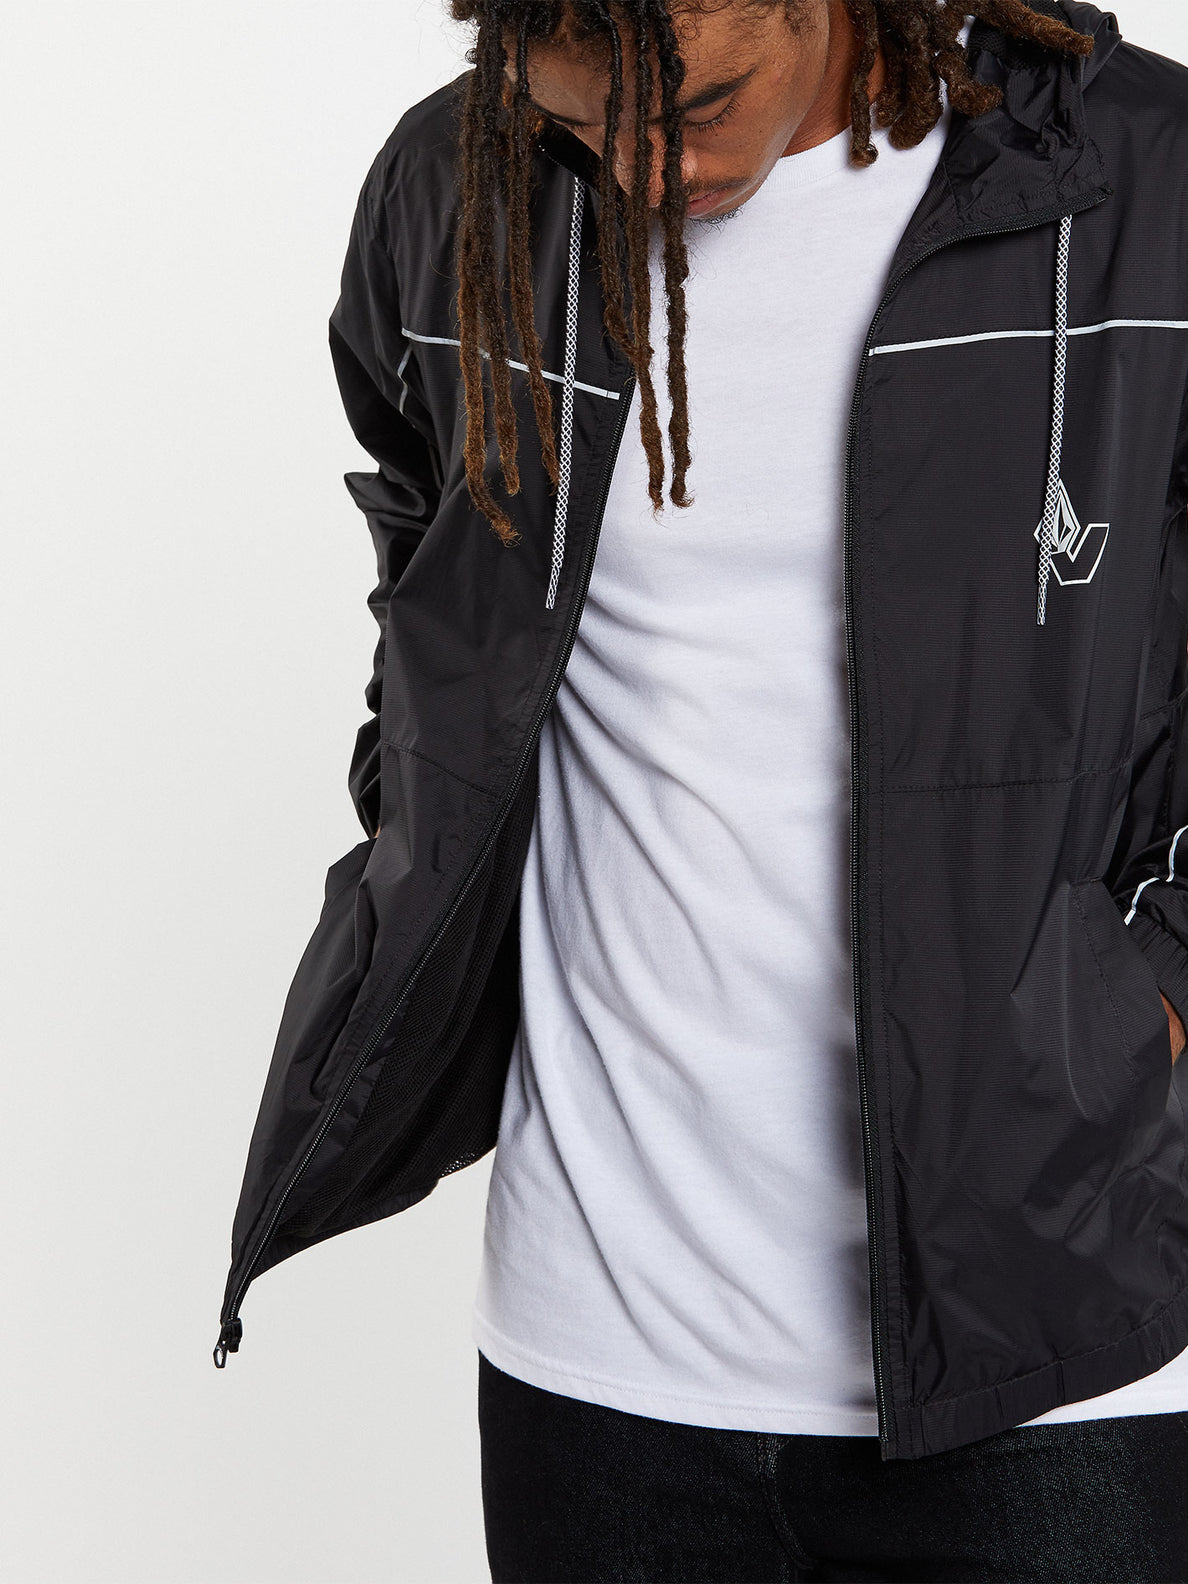 Ermont Jacket - Black (A1532002_BLK) [4]